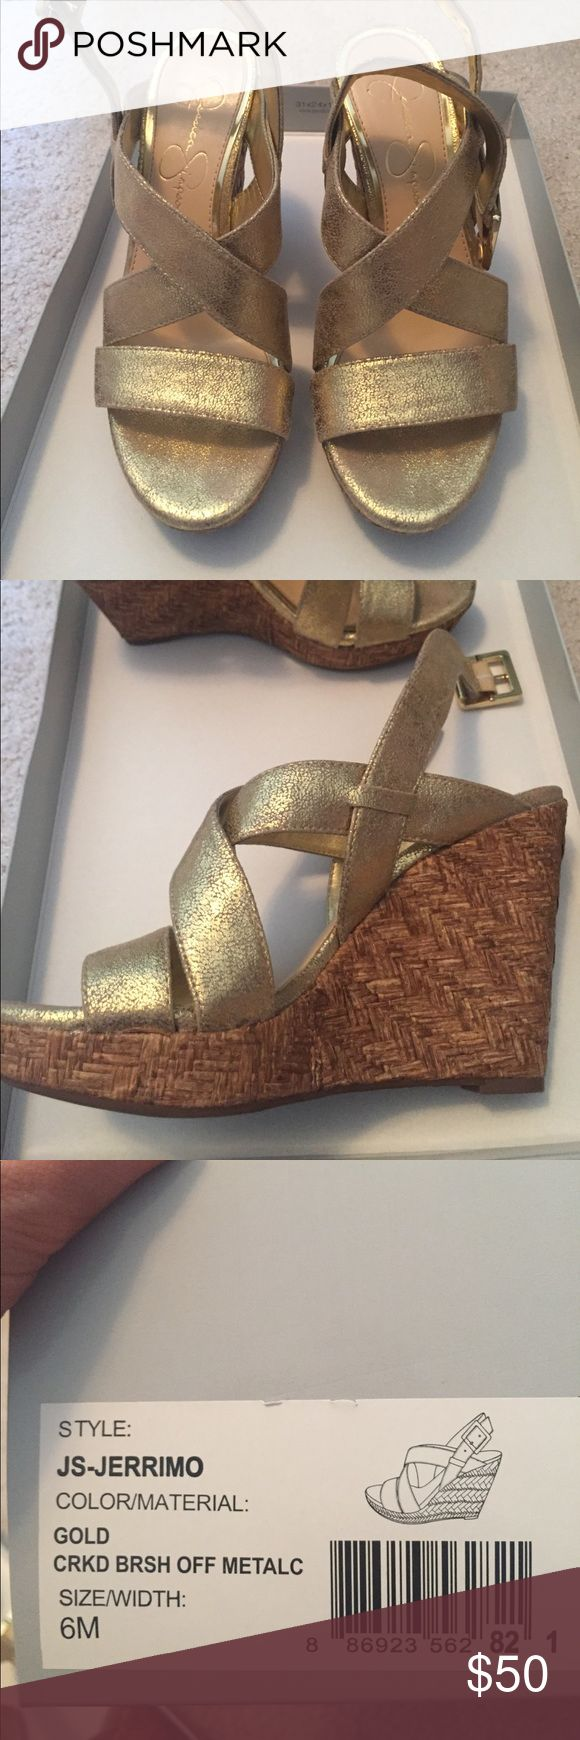 Jessica Simpson gold jerrimo wedges In great condition, only worn a number of times Shoes